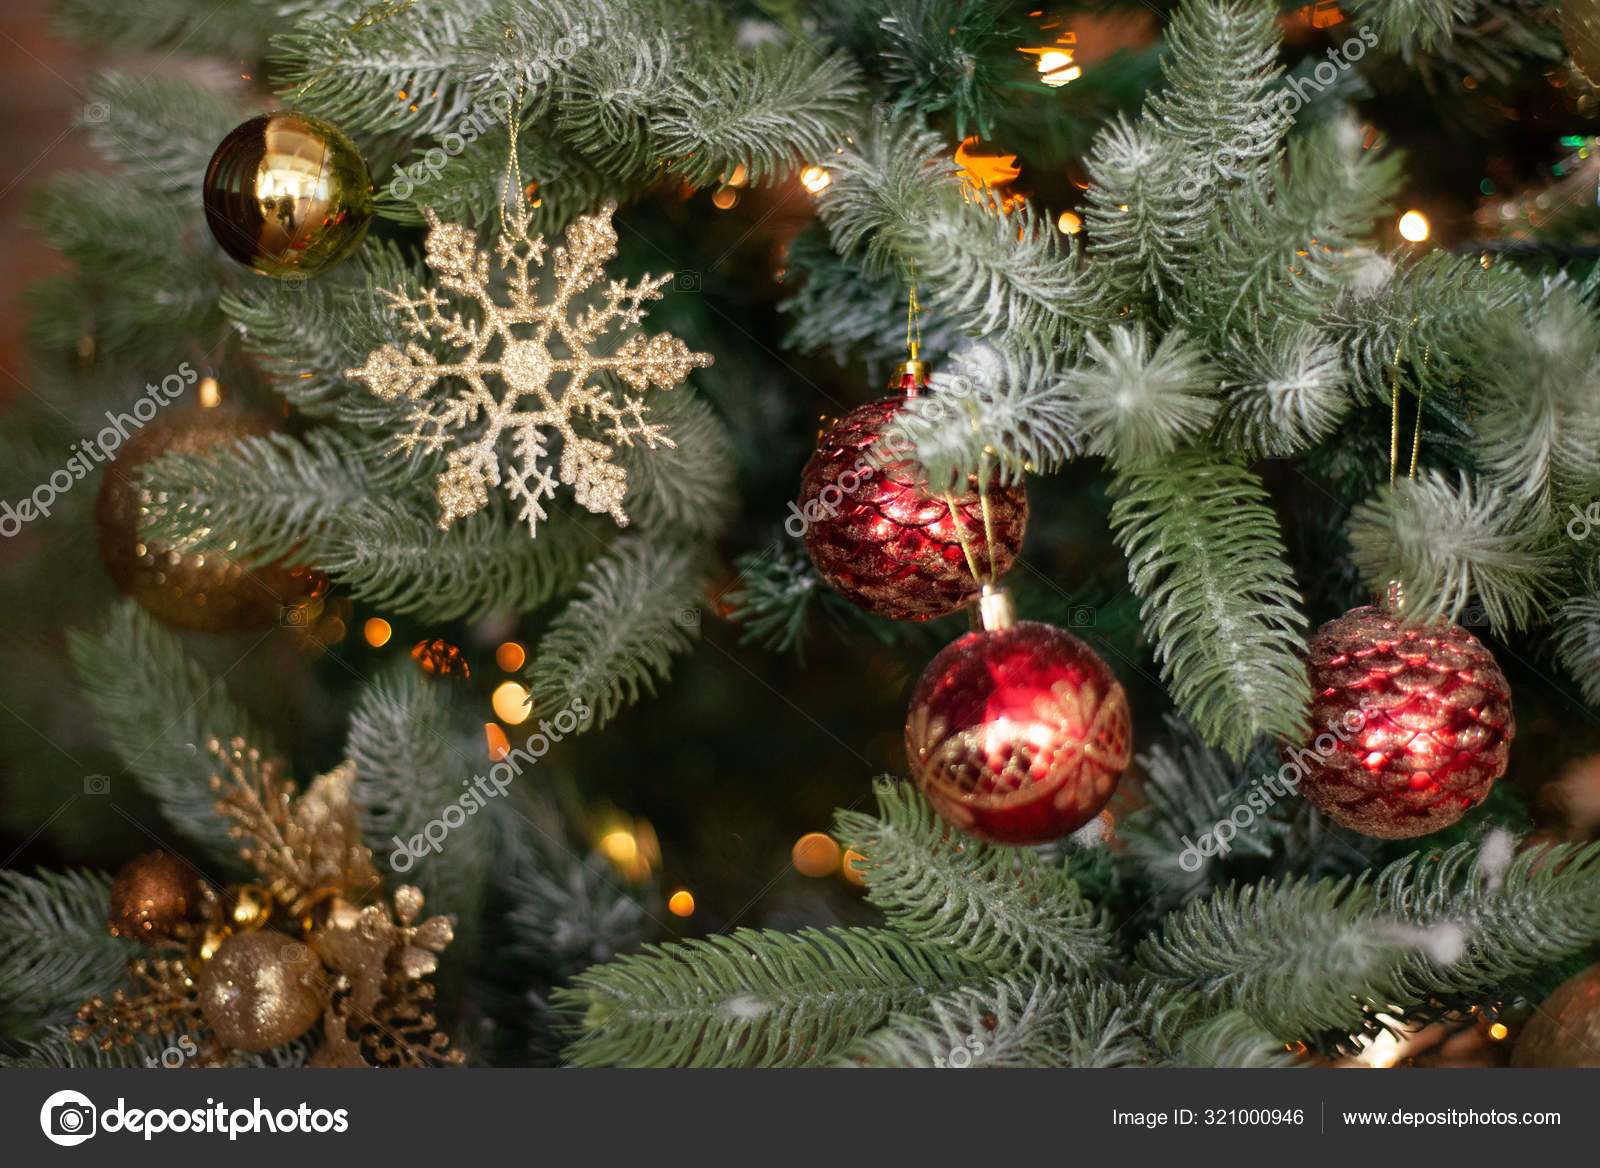 New Year Christmas Background Spruce Christmas Decorations Red Green Gold Lights Bokeh Holiday Concert 2019 2020 2021 Stock Photo Image By C Zaktatyana 321000946